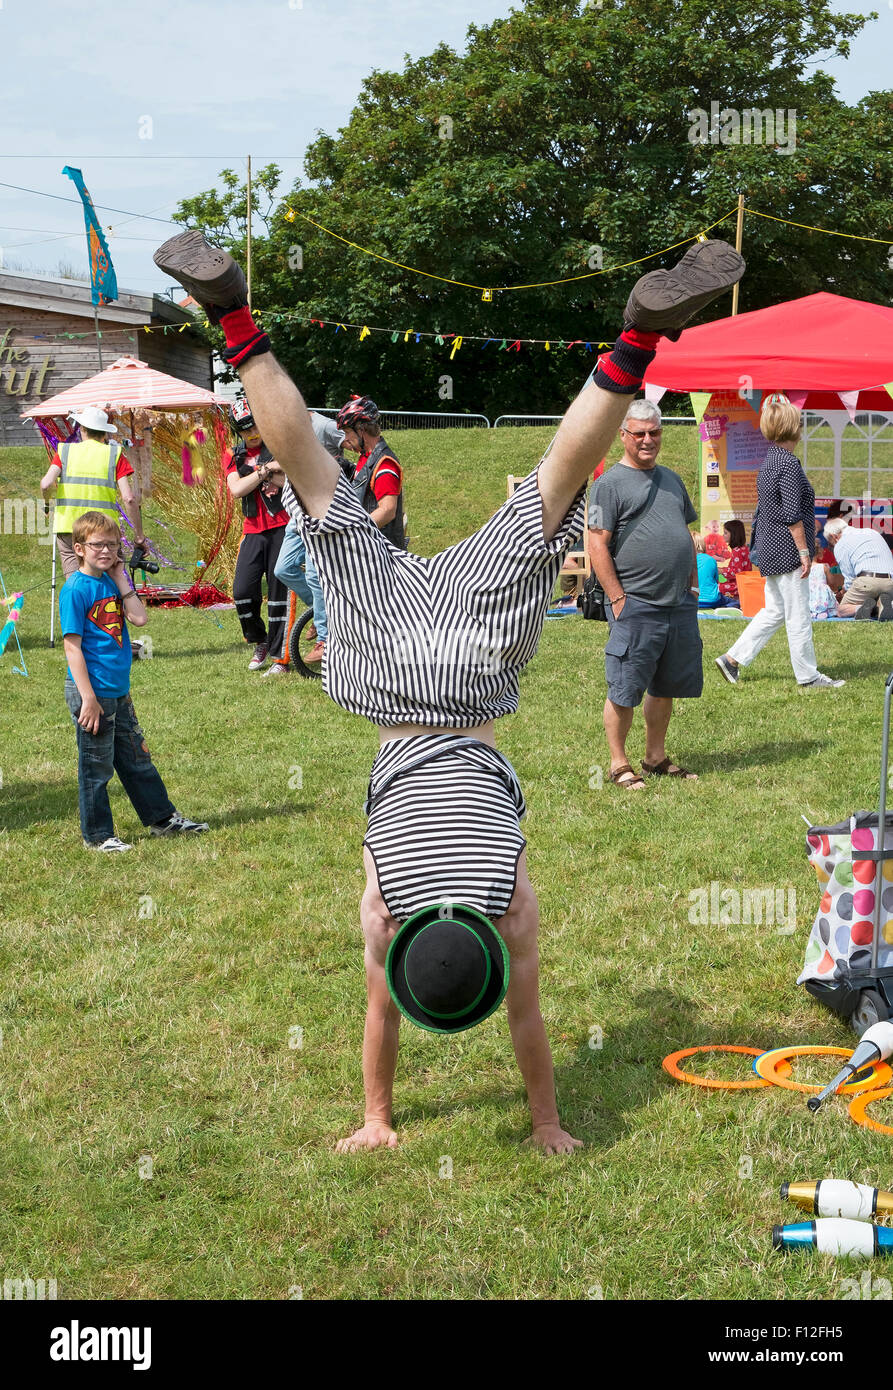 a childrens entertainer doing a handstand - Stock Image